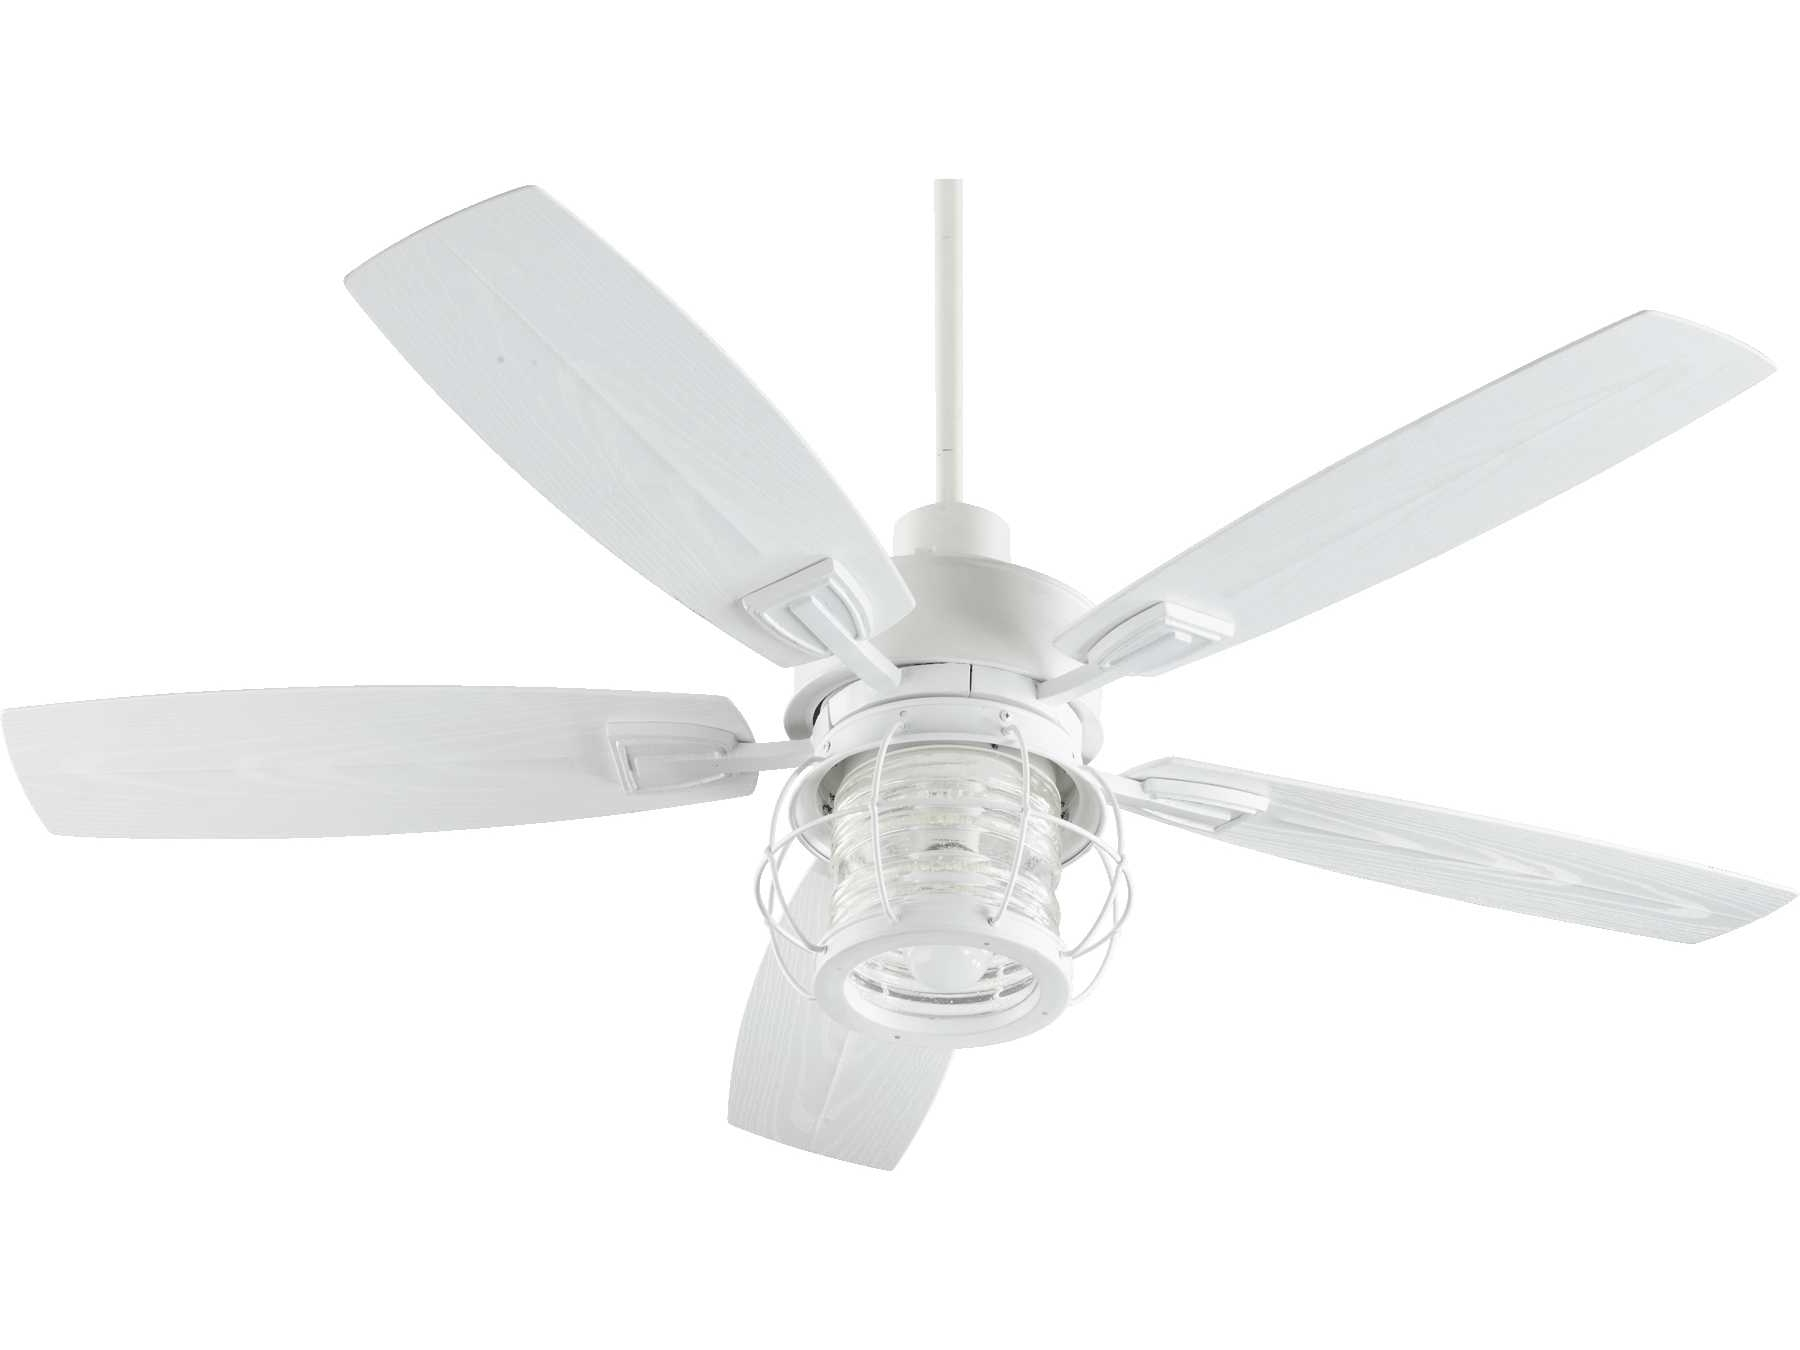 Quorum International Galveston Studio White 52 Inch Outdoor Ceiling Intended For Most Recent Quorum Outdoor Ceiling Fans (Gallery 15 of 20)